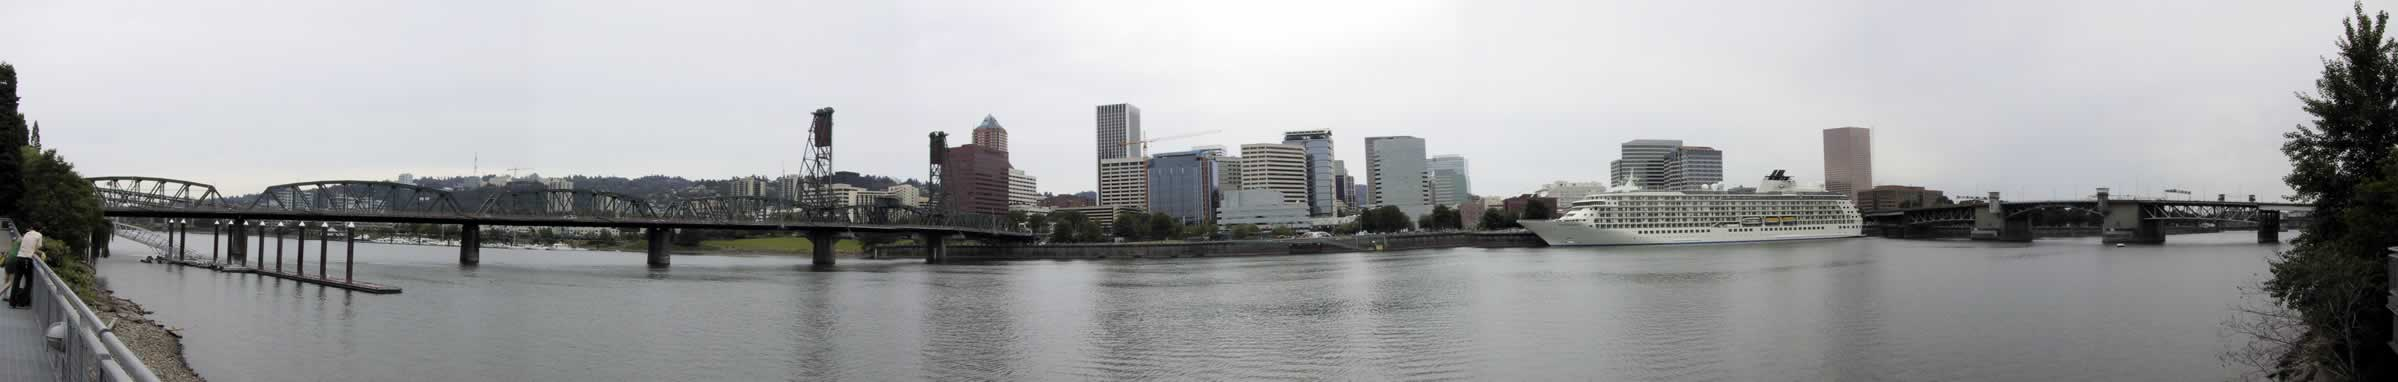 Panorama of The World docked at Portland's Tom McCall Waterfront Park